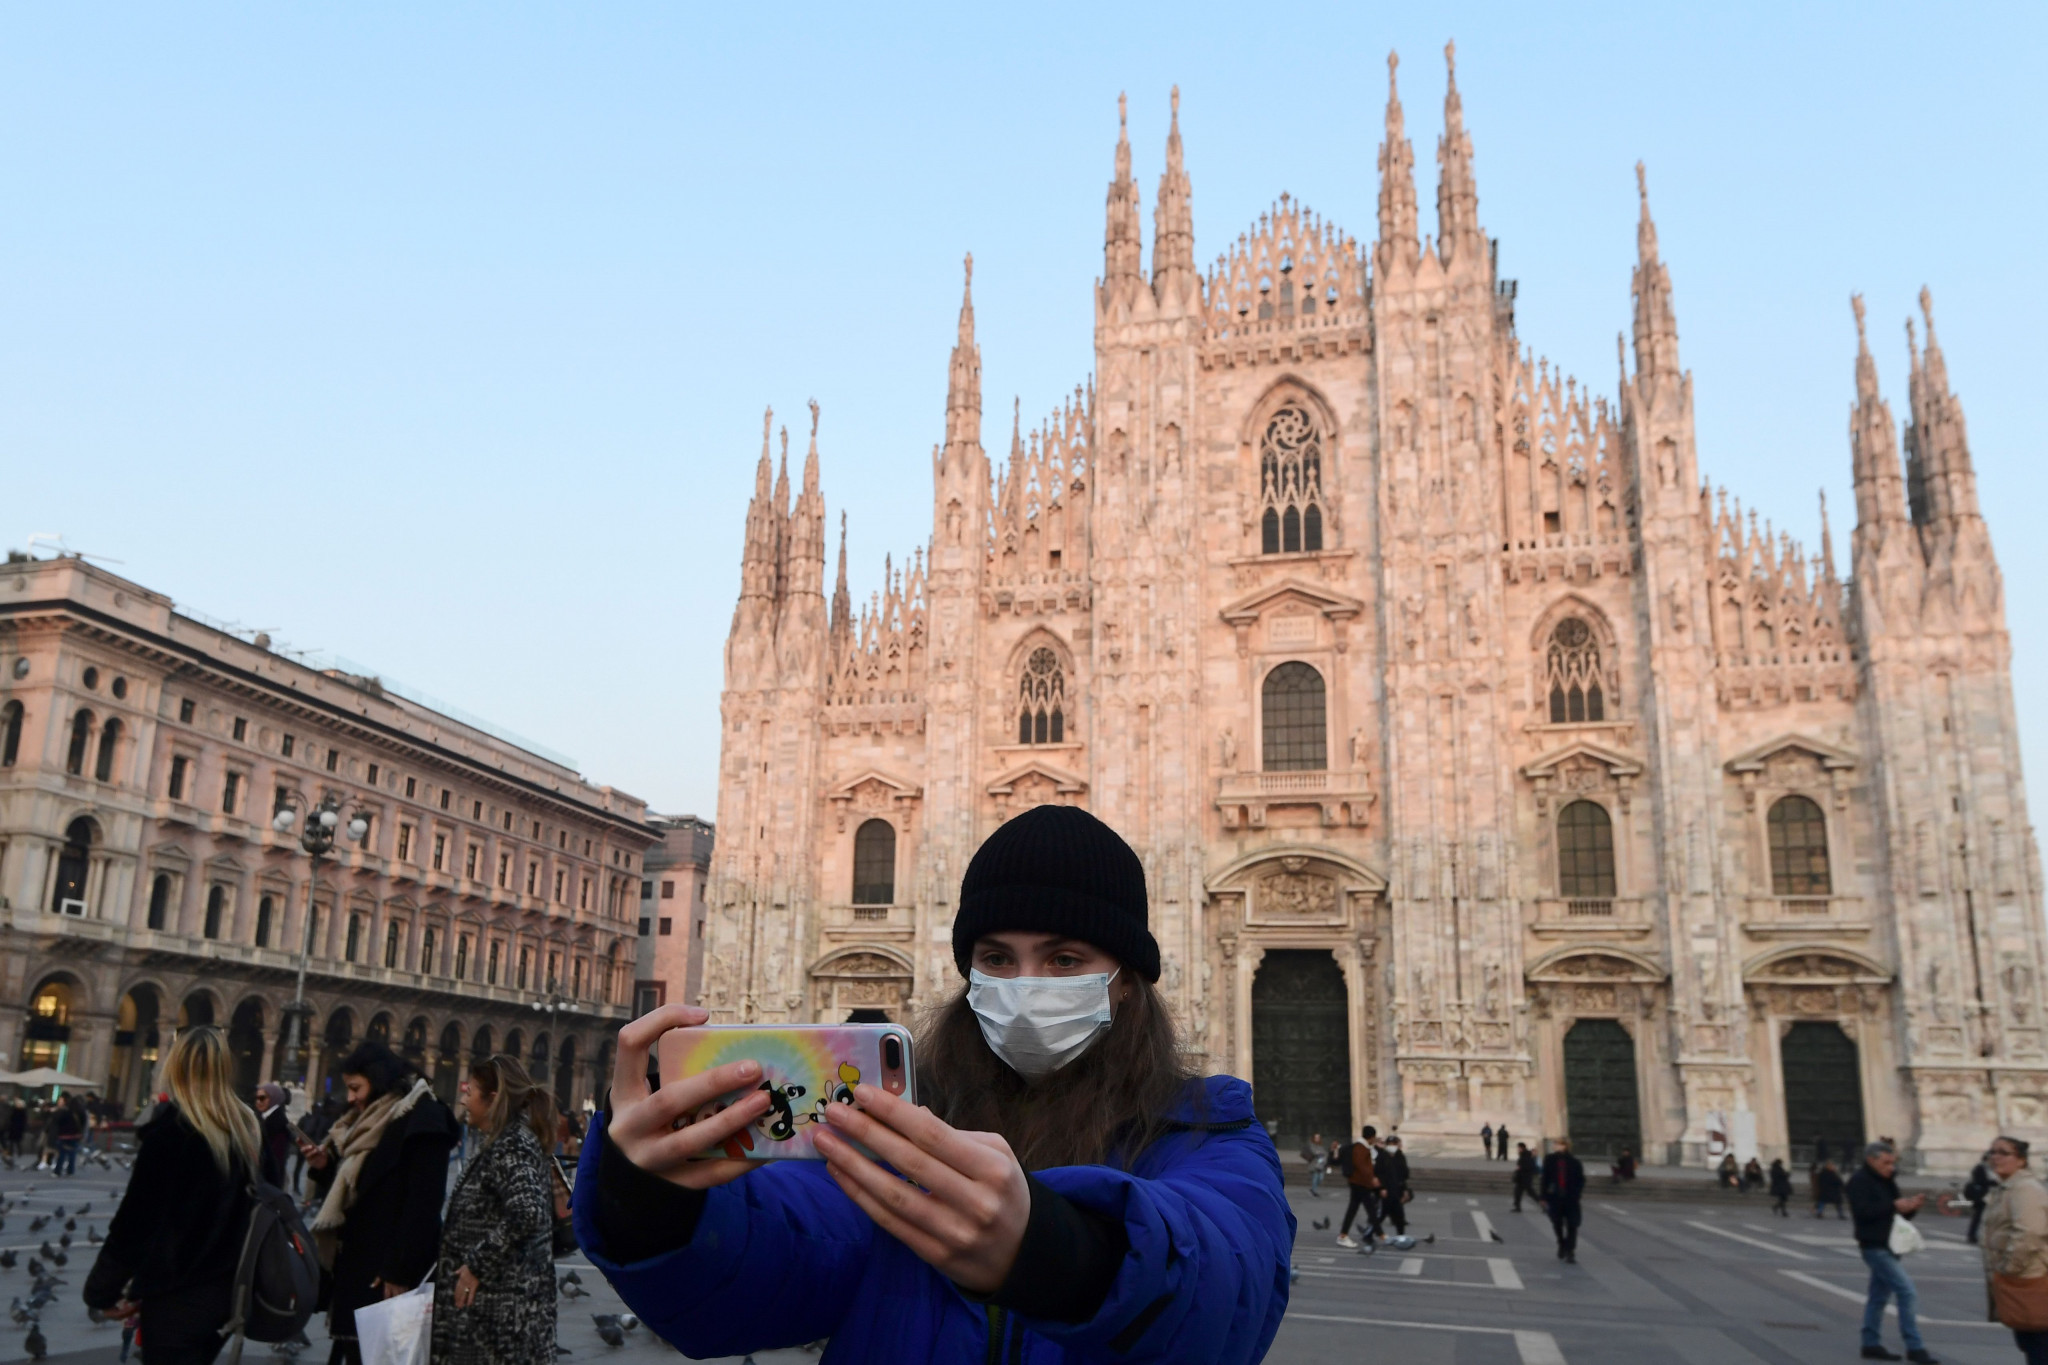 Italy has reported a spike in coronavirus cases ⒸGetty Images